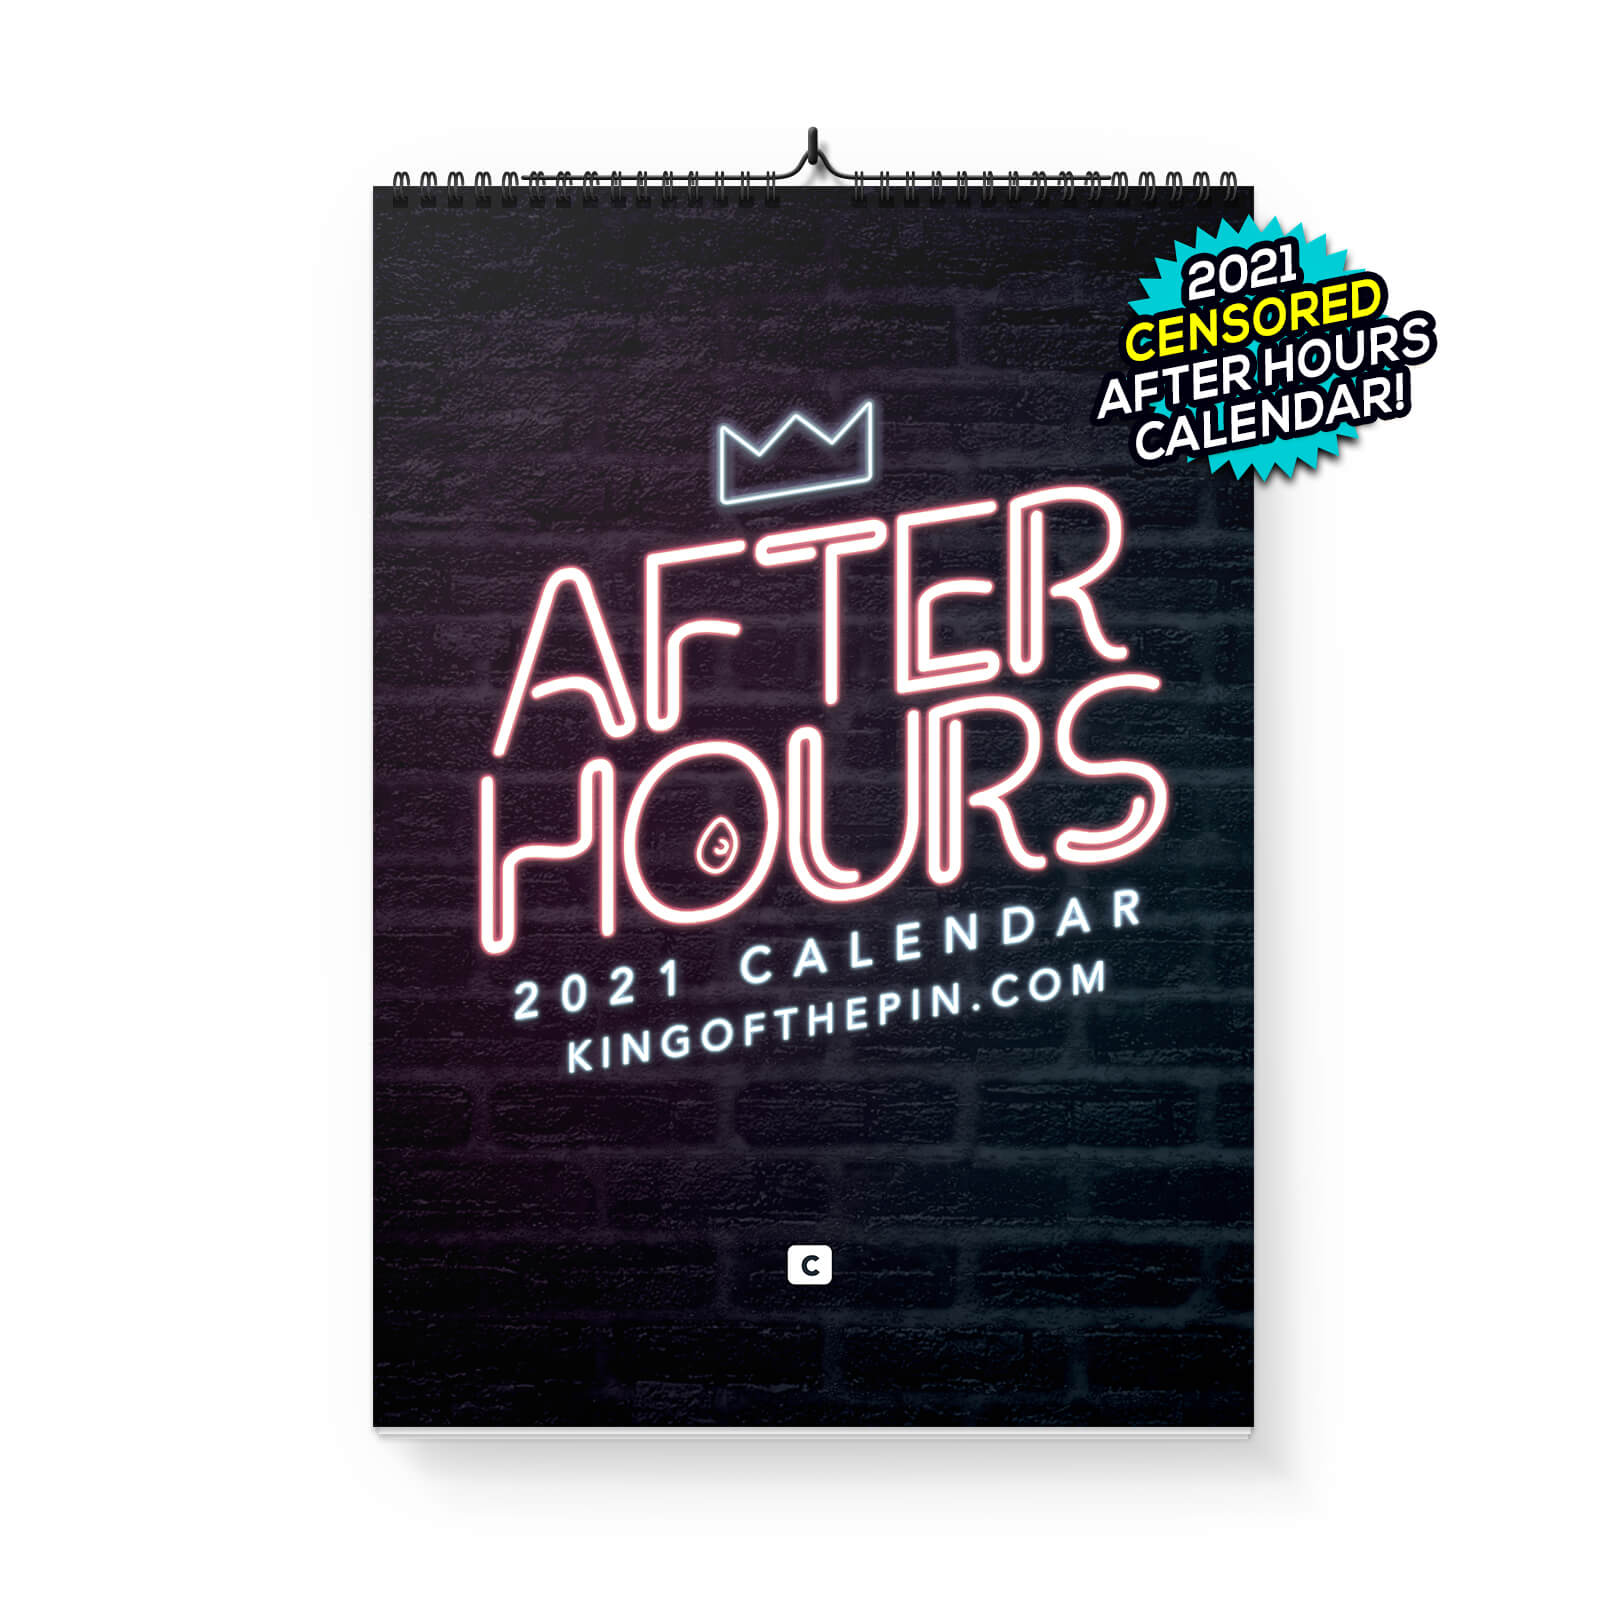 2021 After Hours (Censored) Calendar